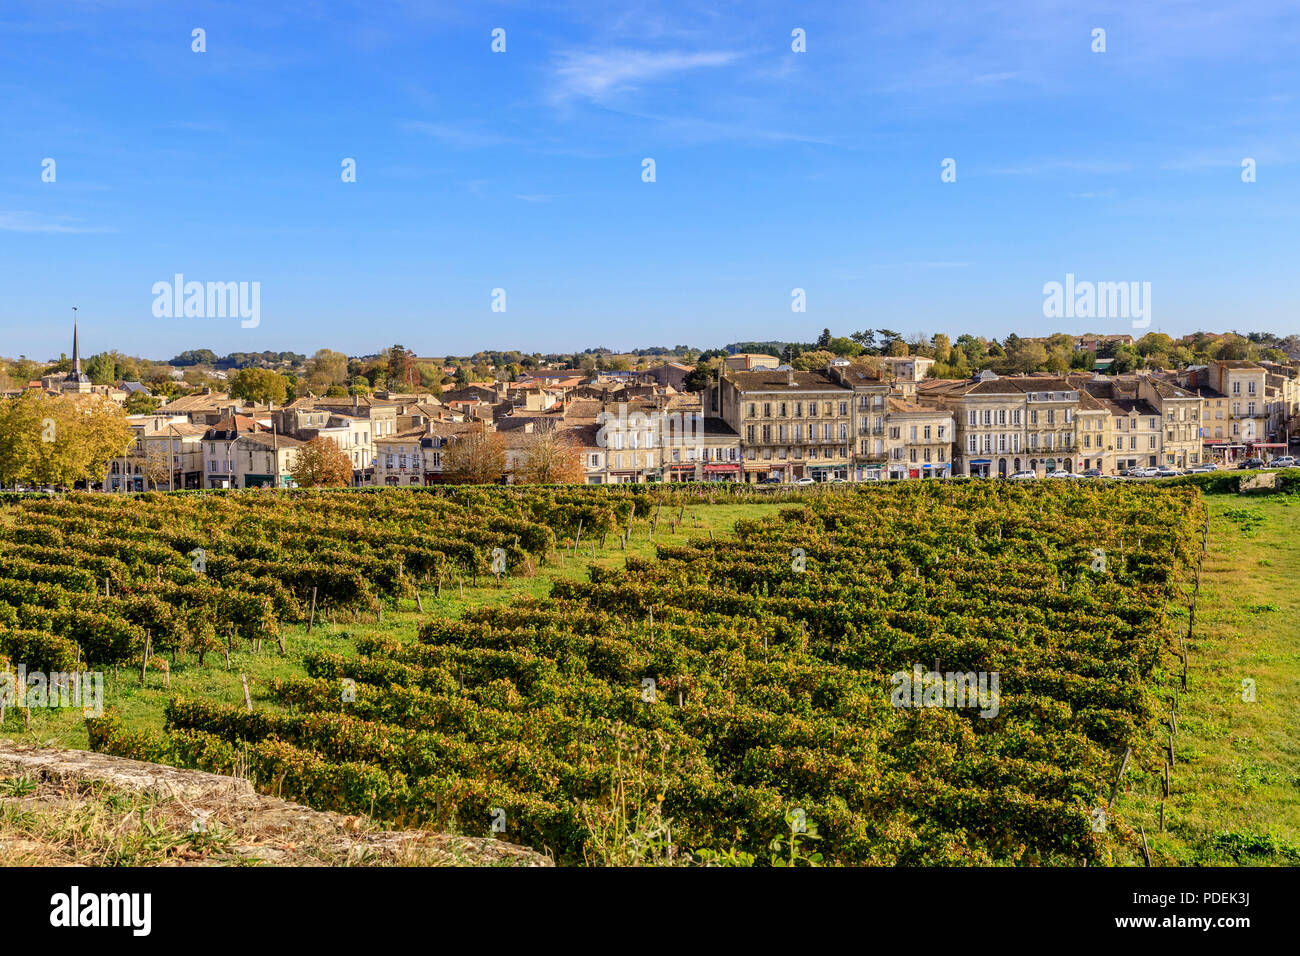 France, Gironde, Blaye, the city and the Echauguette vineyard from the citadel ramparts, Reseau des sites majeurs de Vauban (Fortifications of Vauban  - Stock Image